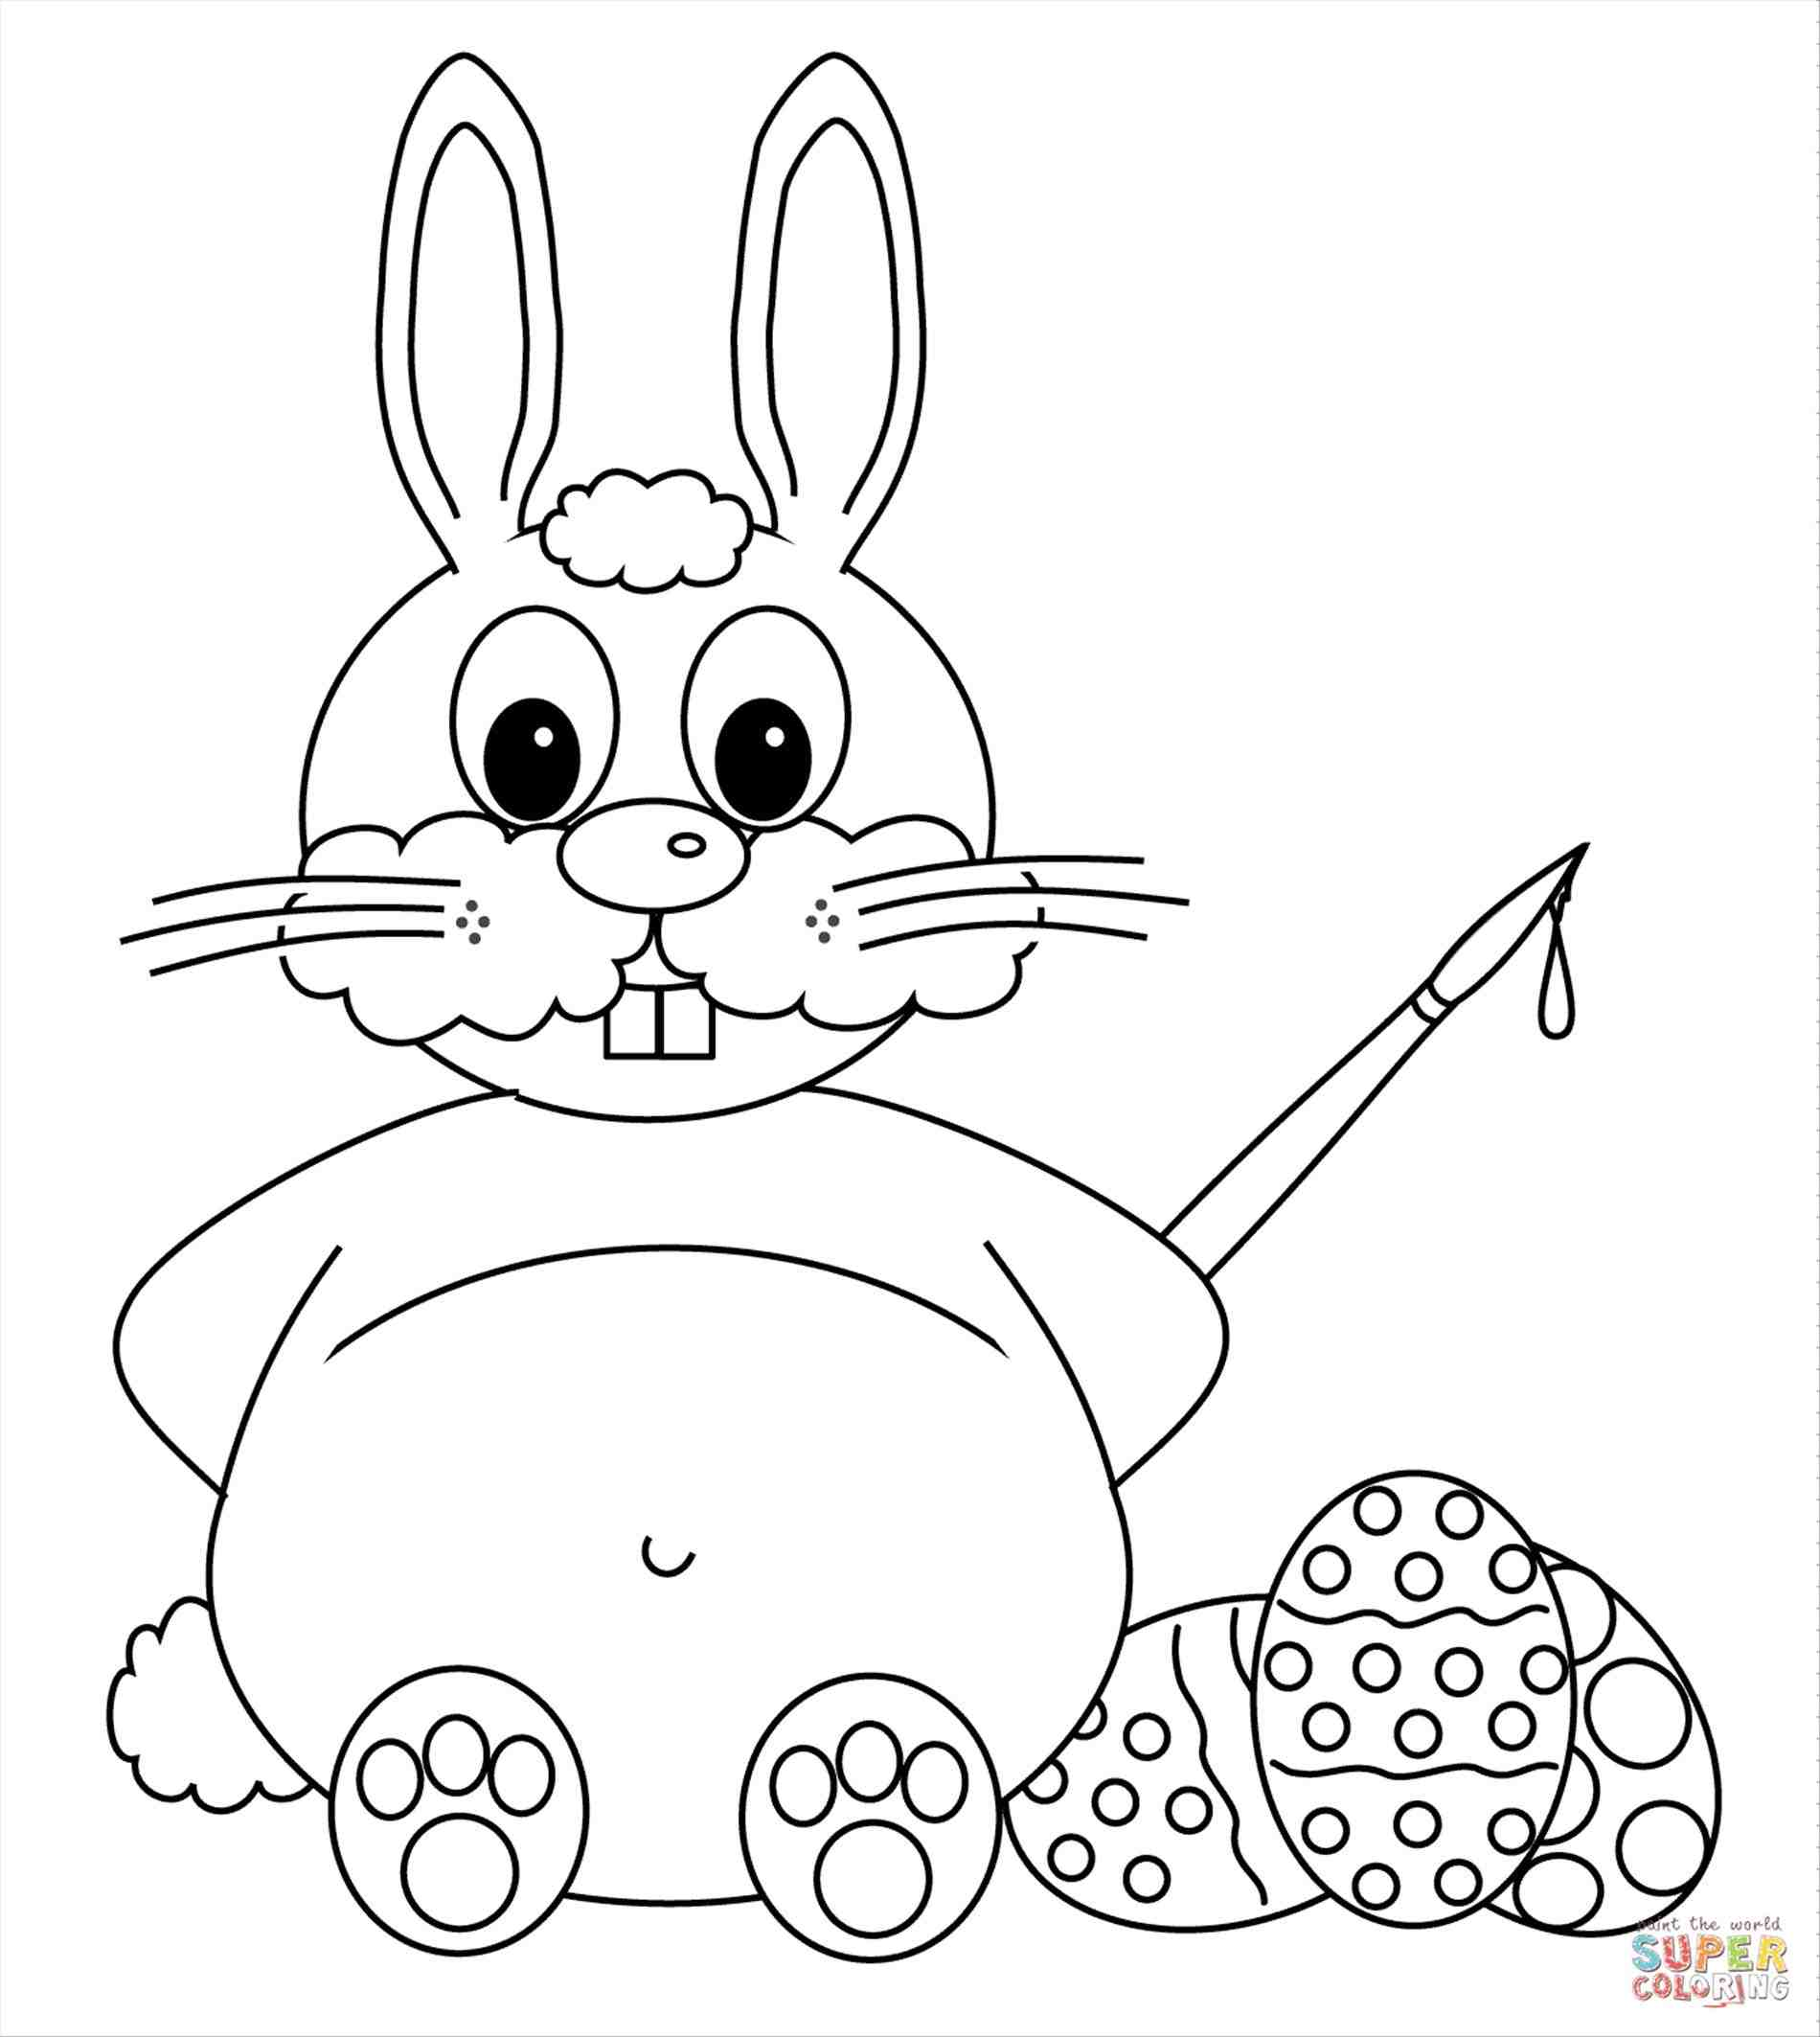 1900x2126 Image Titled Draw The Easter Bunny Step 15. A How To Draw